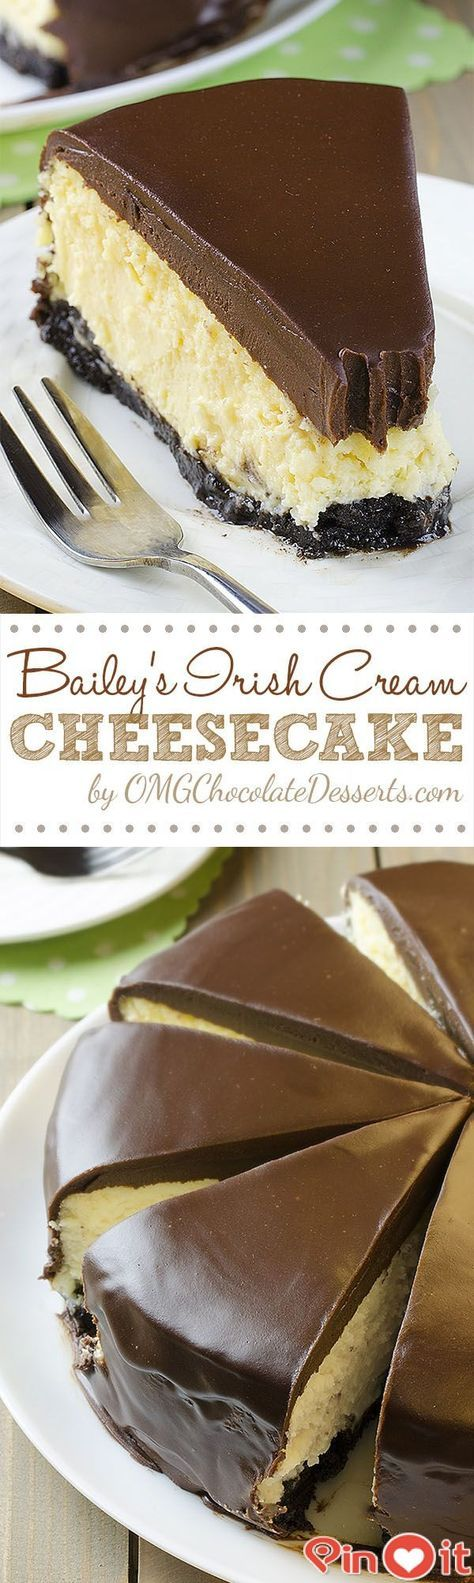 FASHİON TV 2015: Bailey's Irish Cream Cheesecake